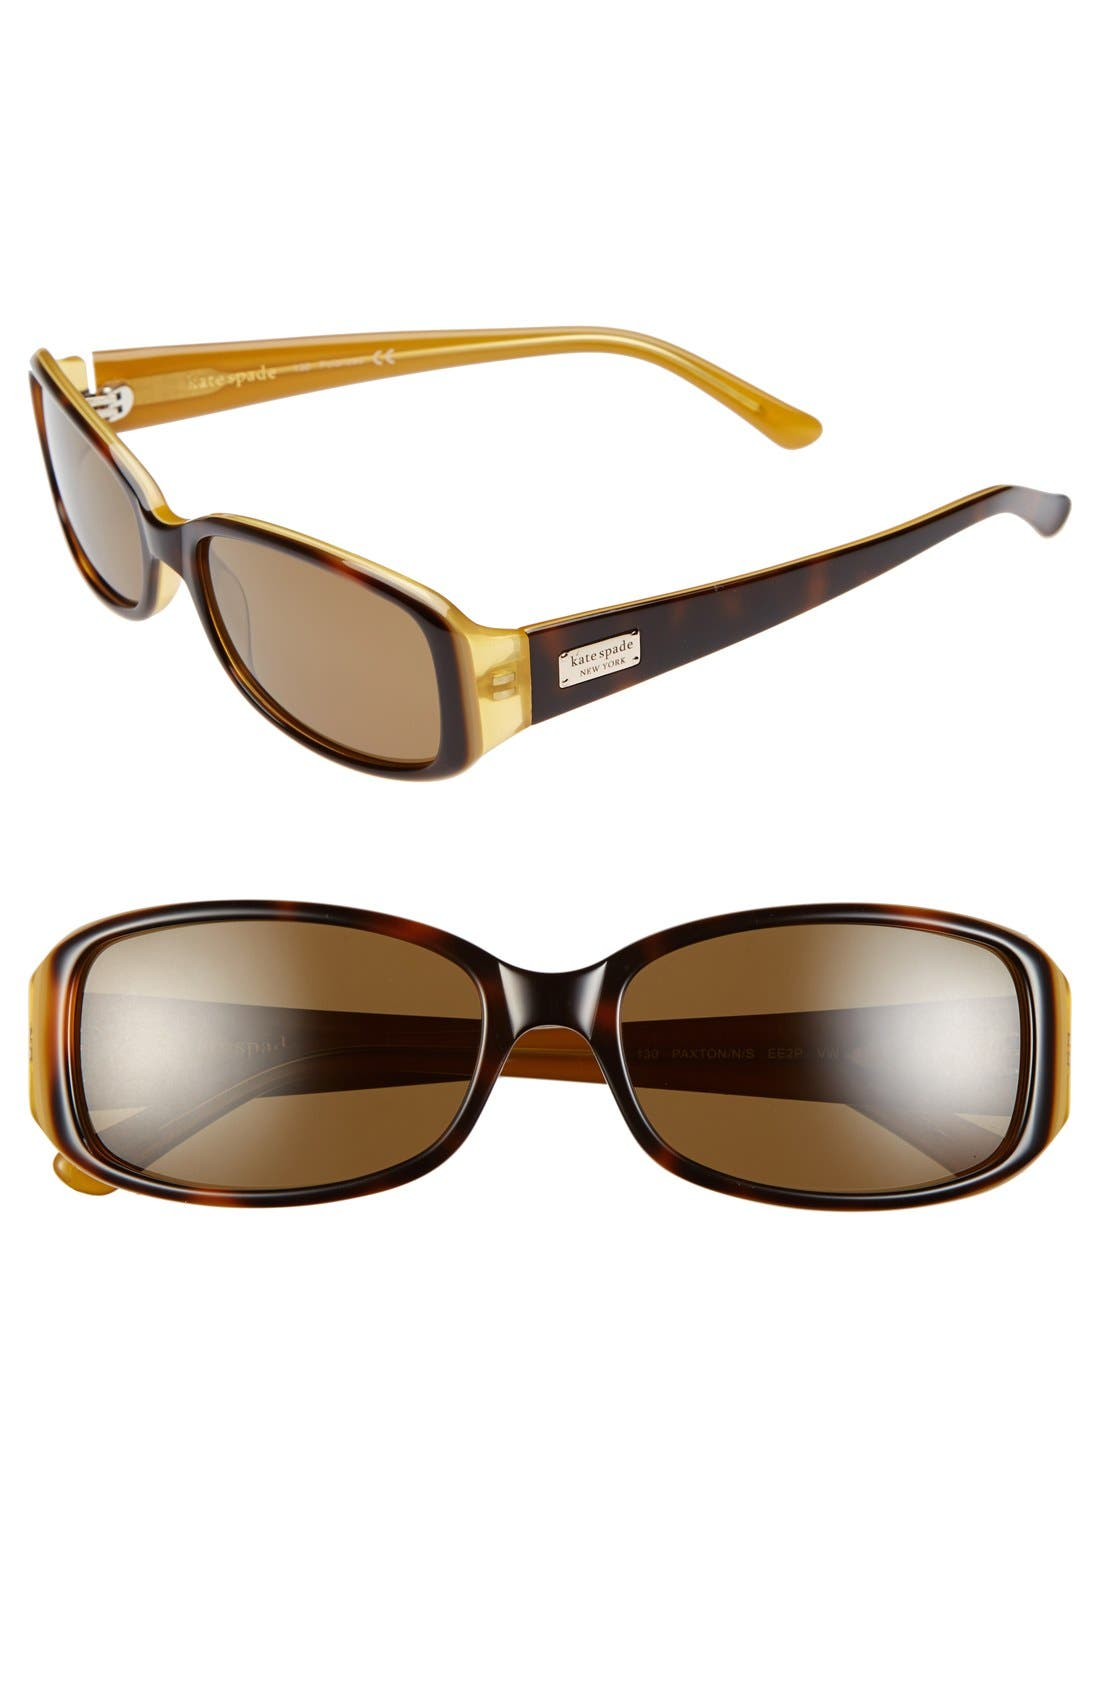 Alternate Image 1 Selected - kate spade new york 'paxton' 53mm polarized sunglasses